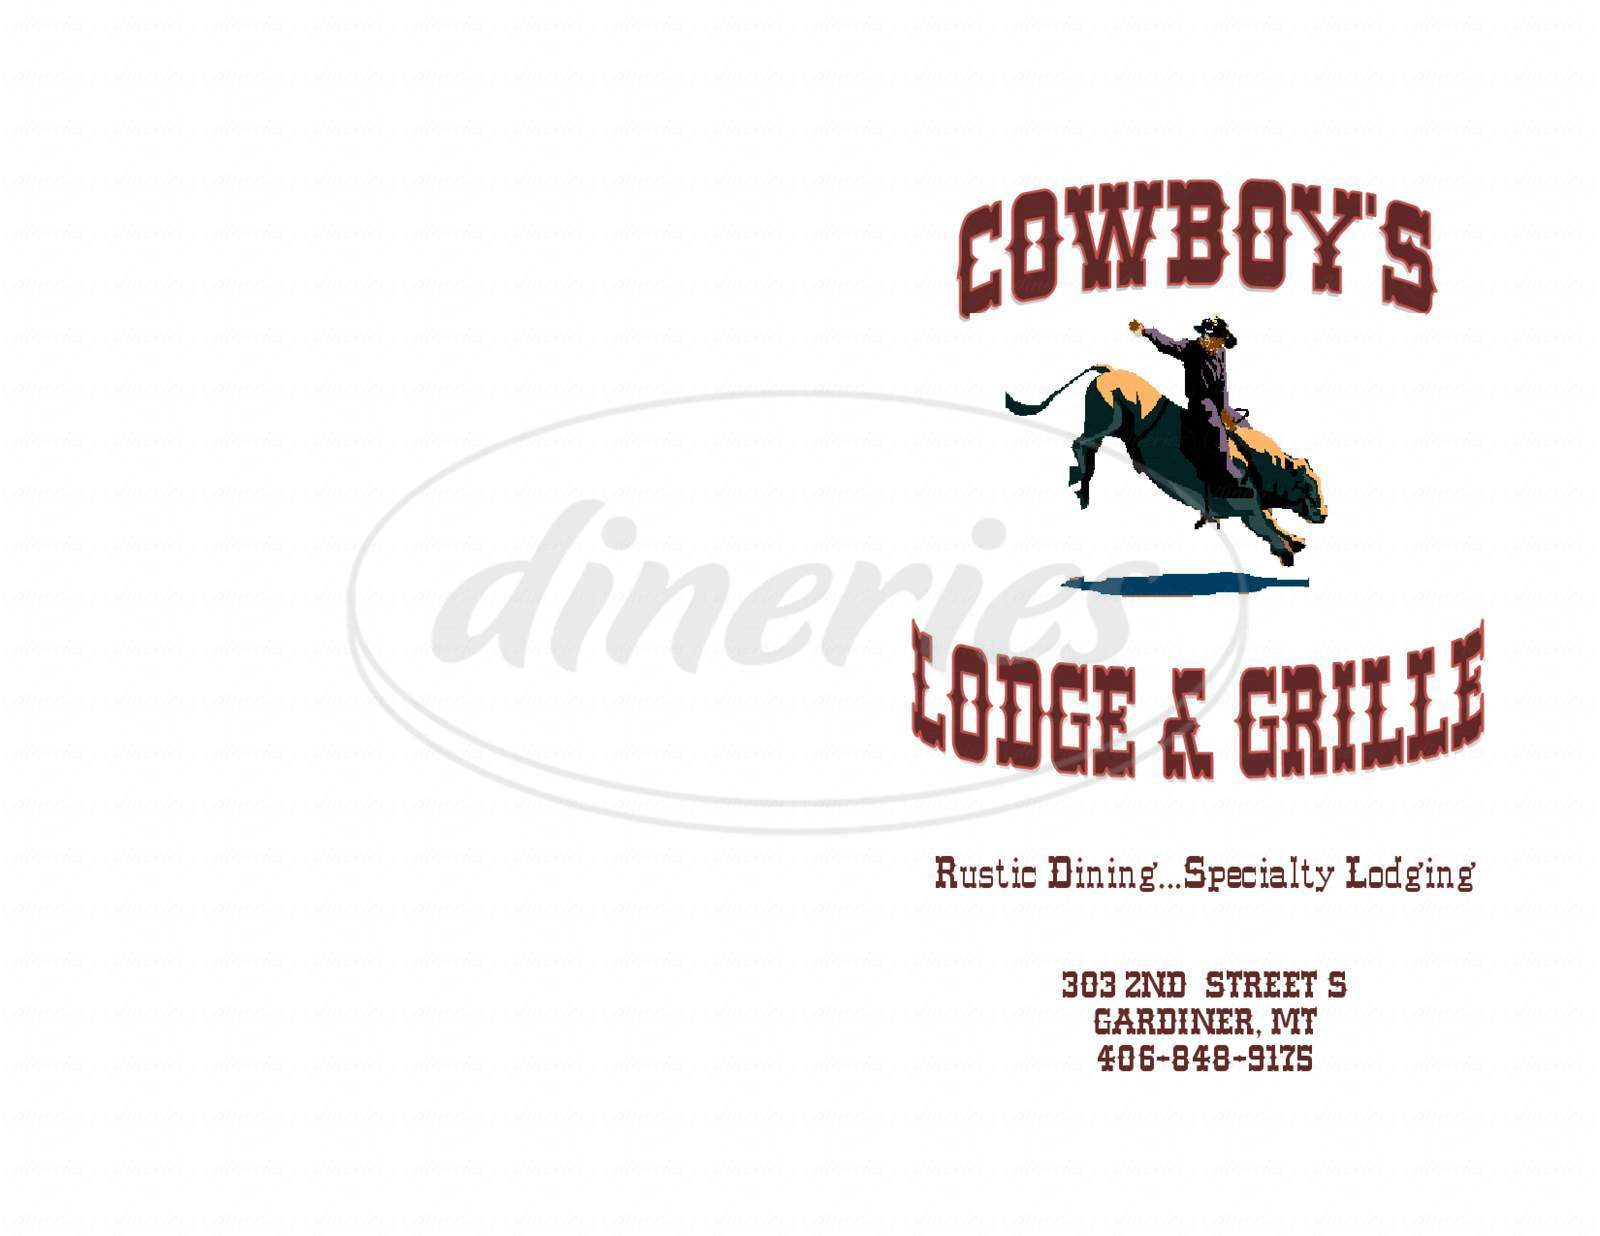 menu for Cowboy's Lodge & Grille